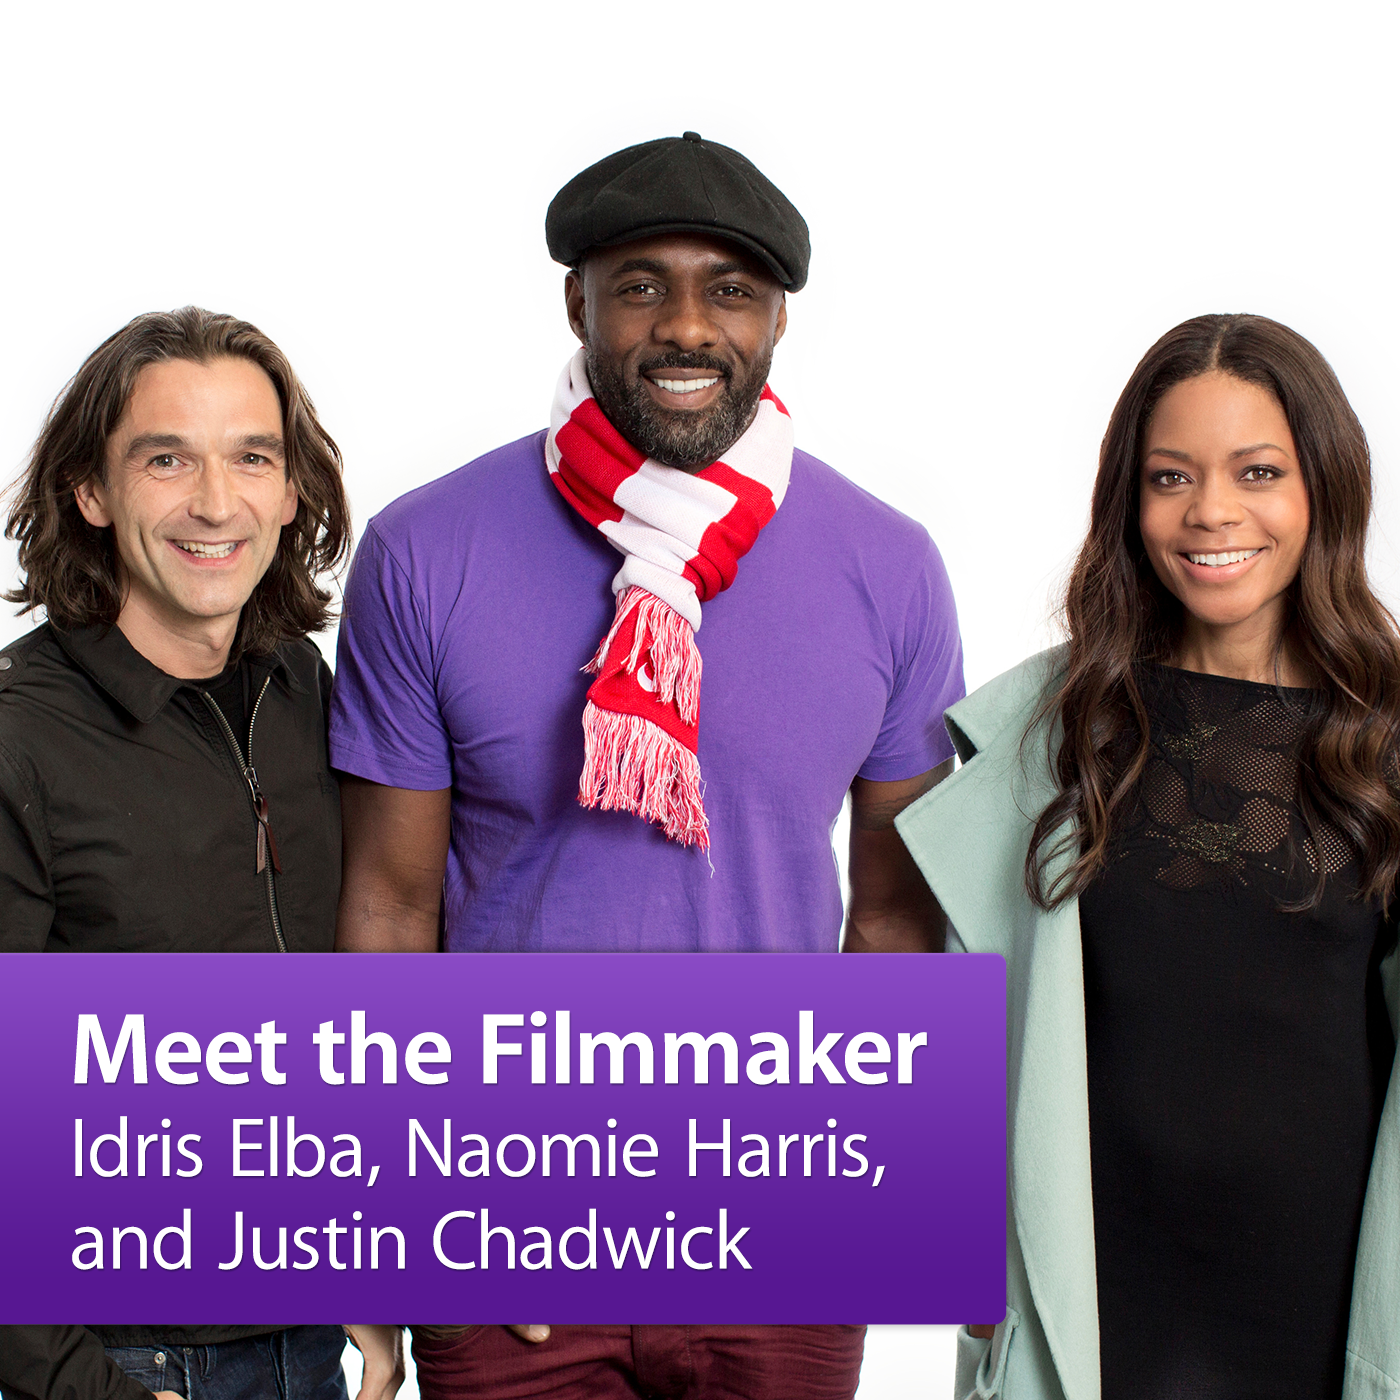 Idris Elba, Naomie Harris, and Justin Chadwick: Meet the Filmmaker